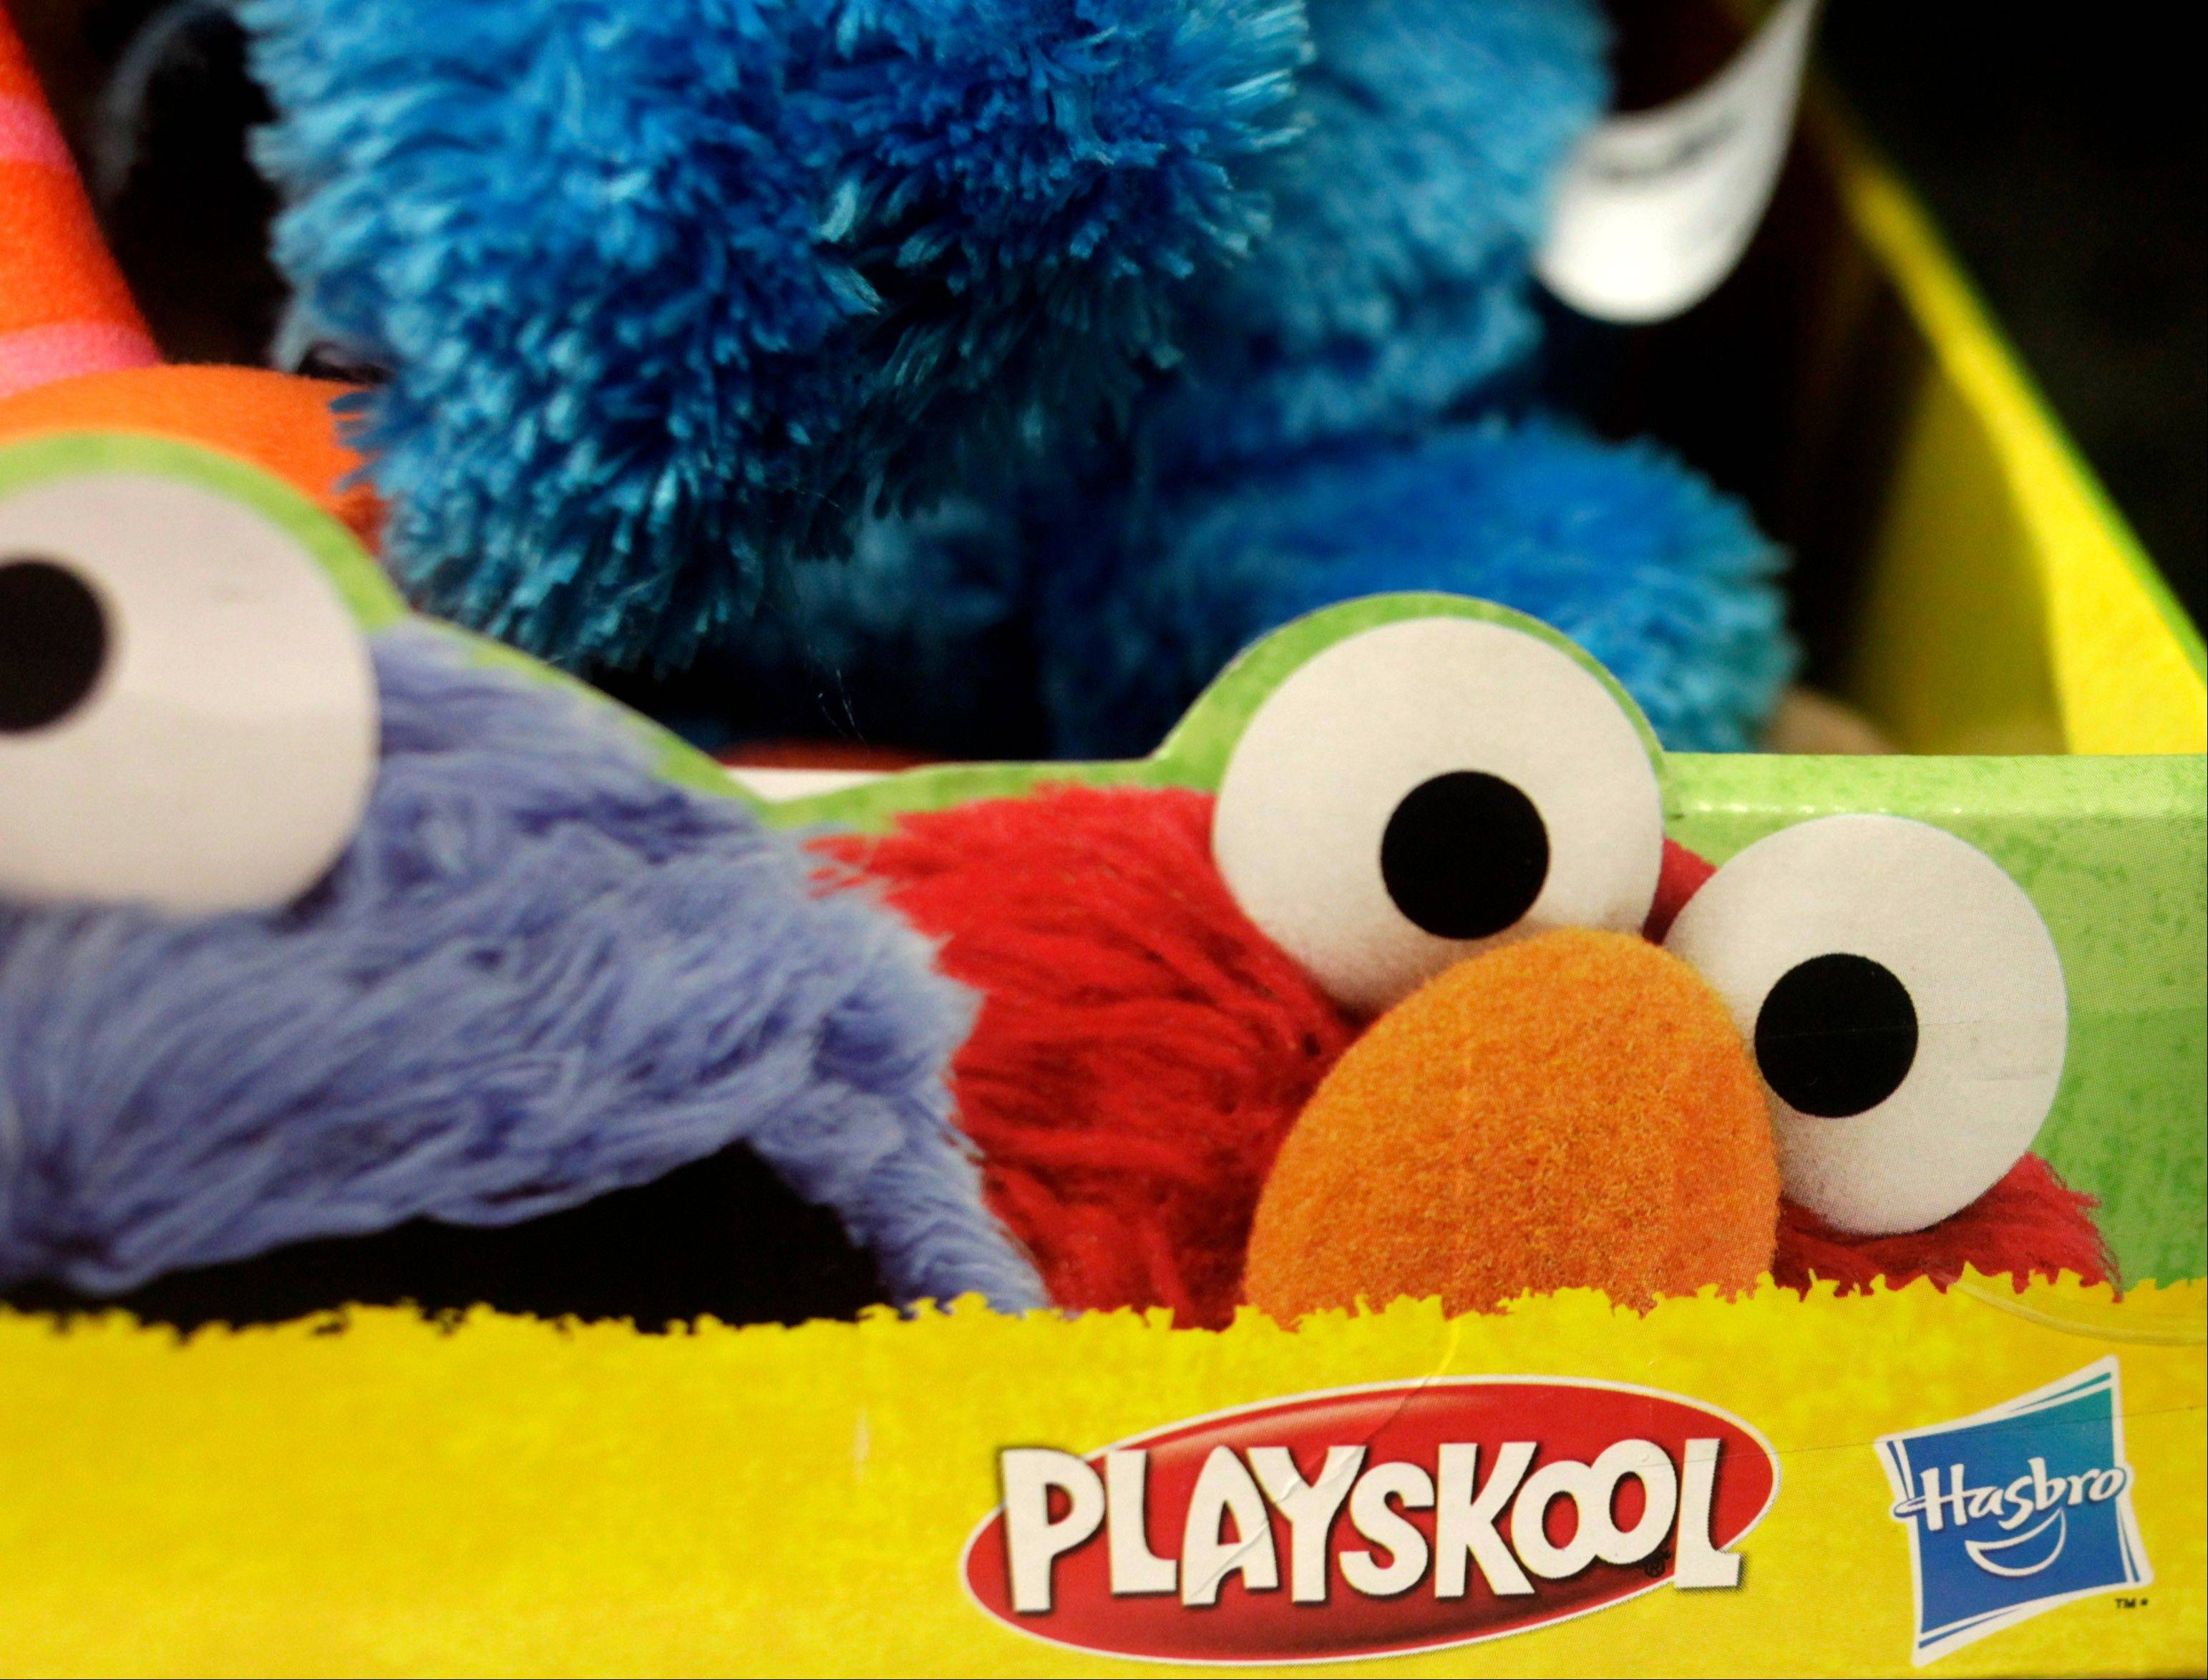 Hasbro Inc. announced that its third-quarter net income was down by 4 percent. But the Pawtucket, R.I.-based company remains confident heading into the critical holiday season, which is when toy makers can earn up to 40 percent of annual revenue.